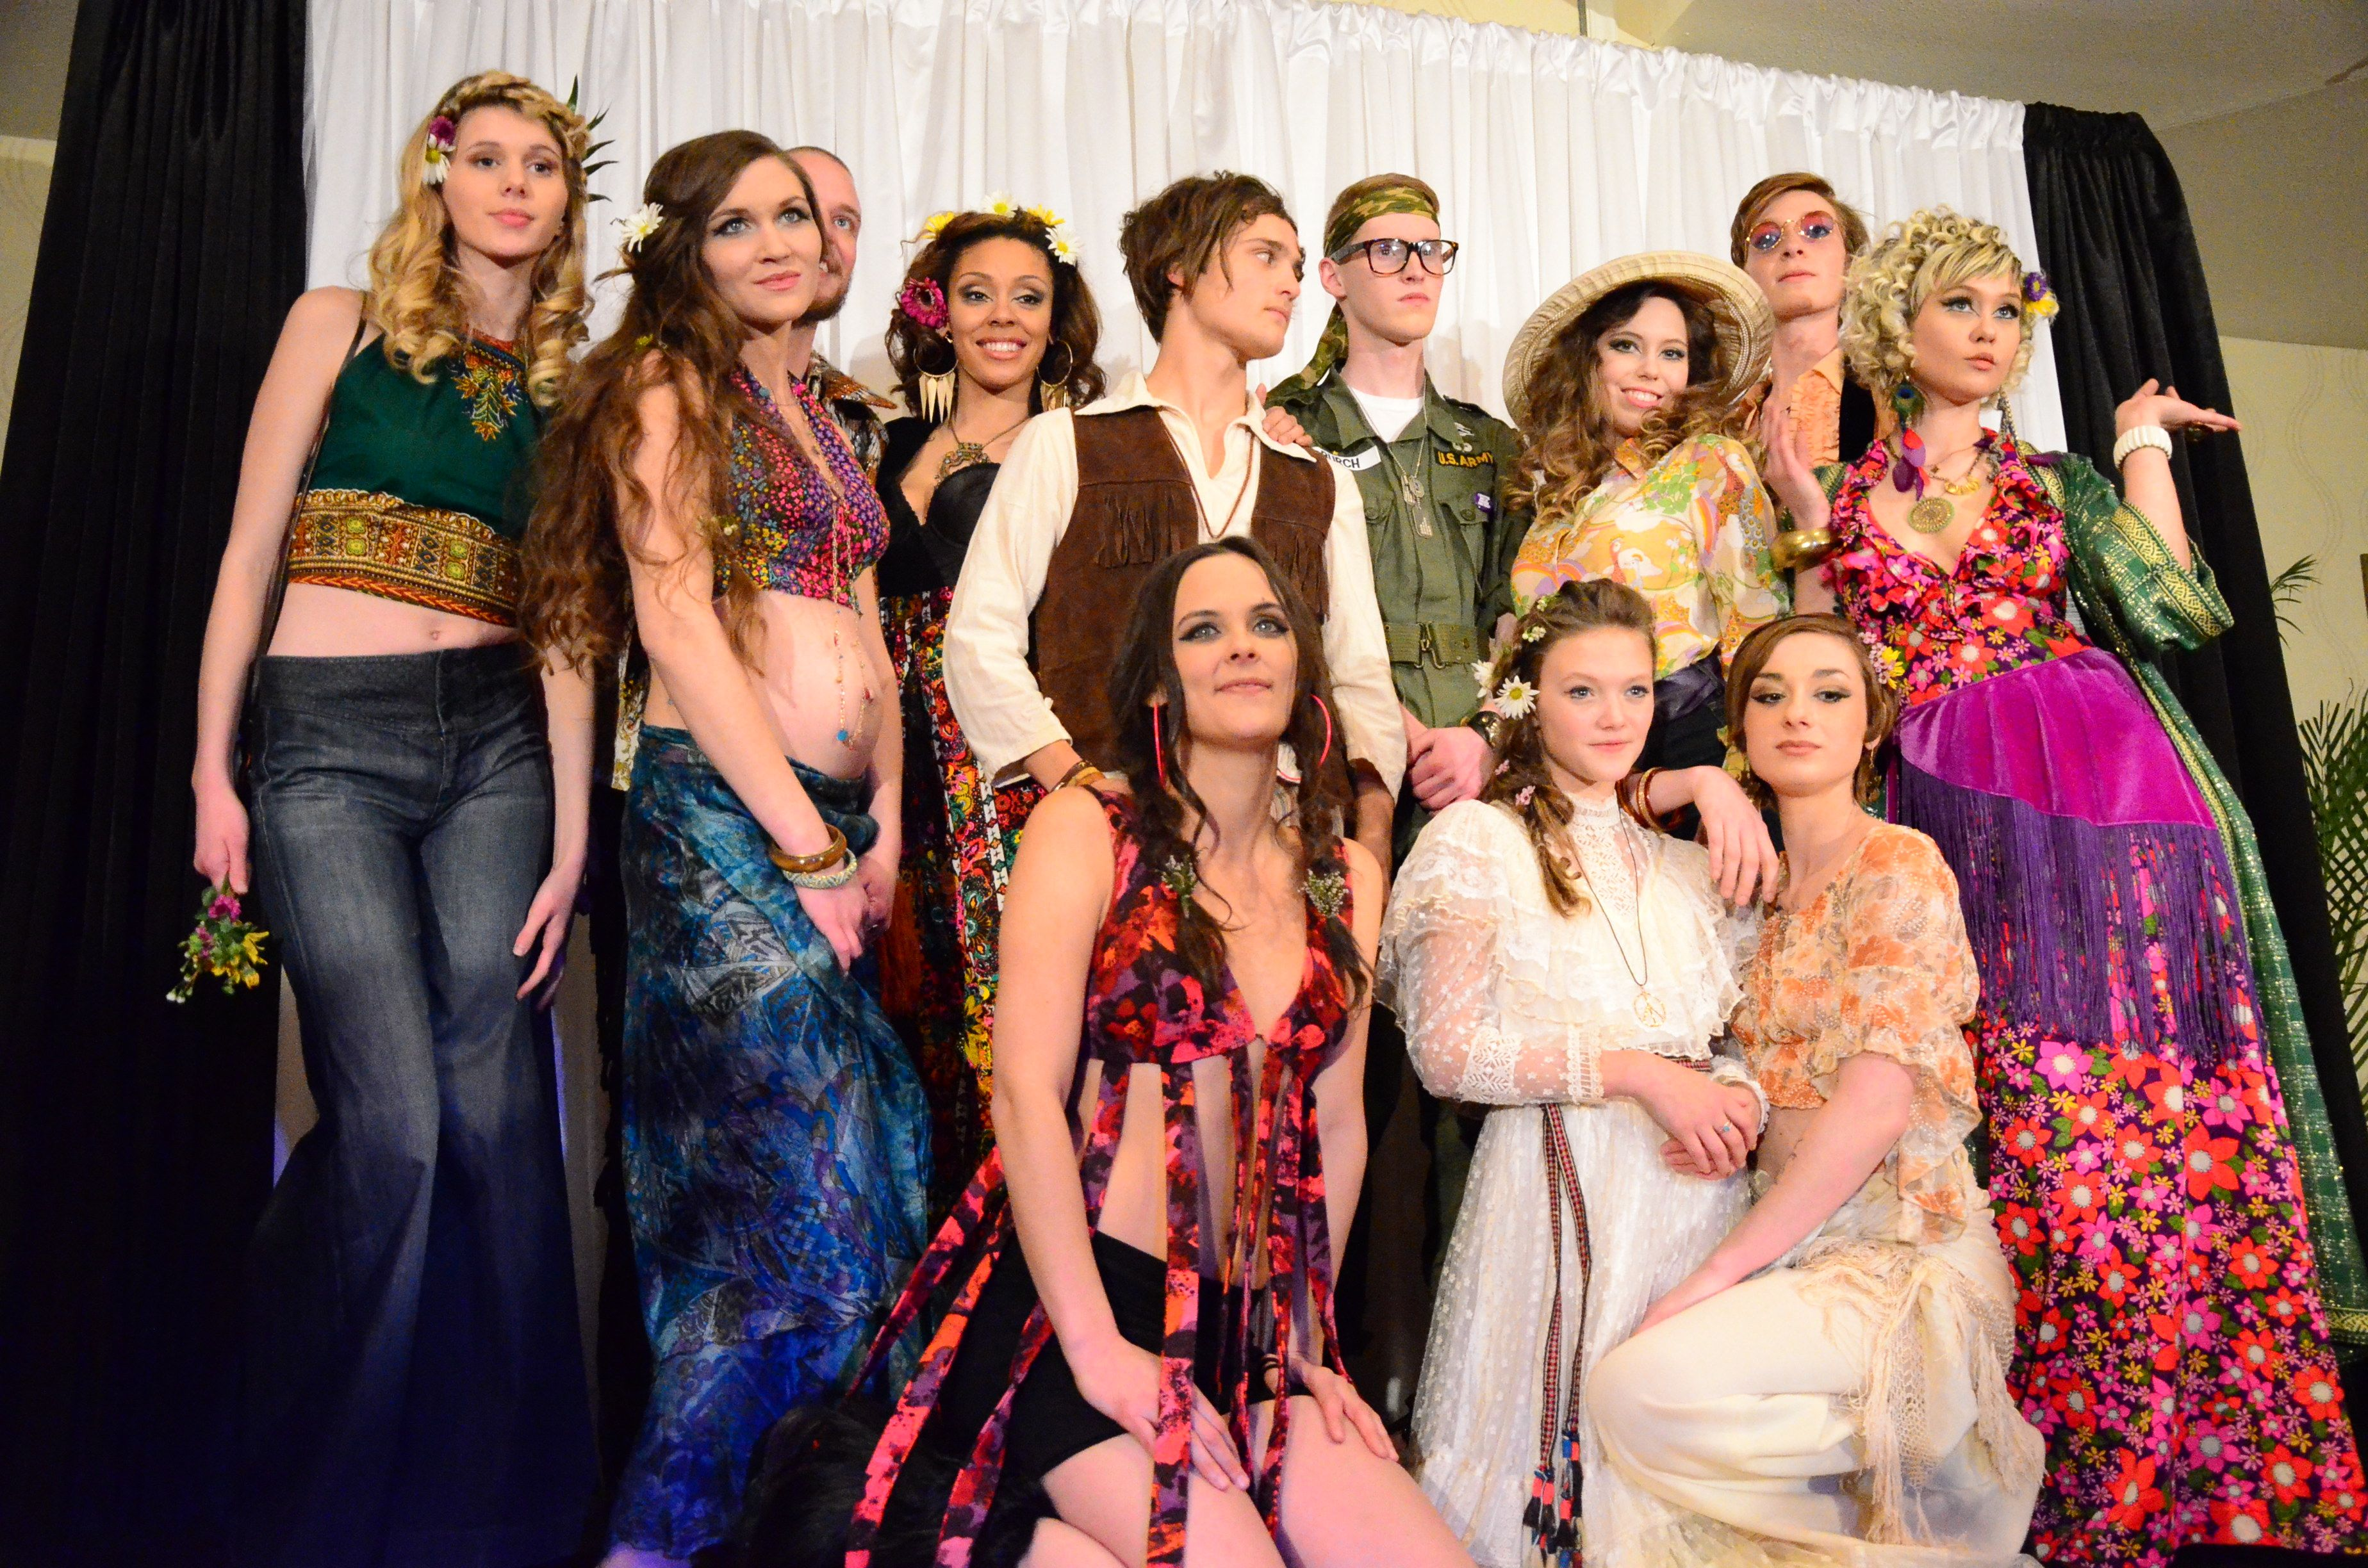 PHOTOS: Ashvegas After Dark at the Product of the 60s Fashion Show